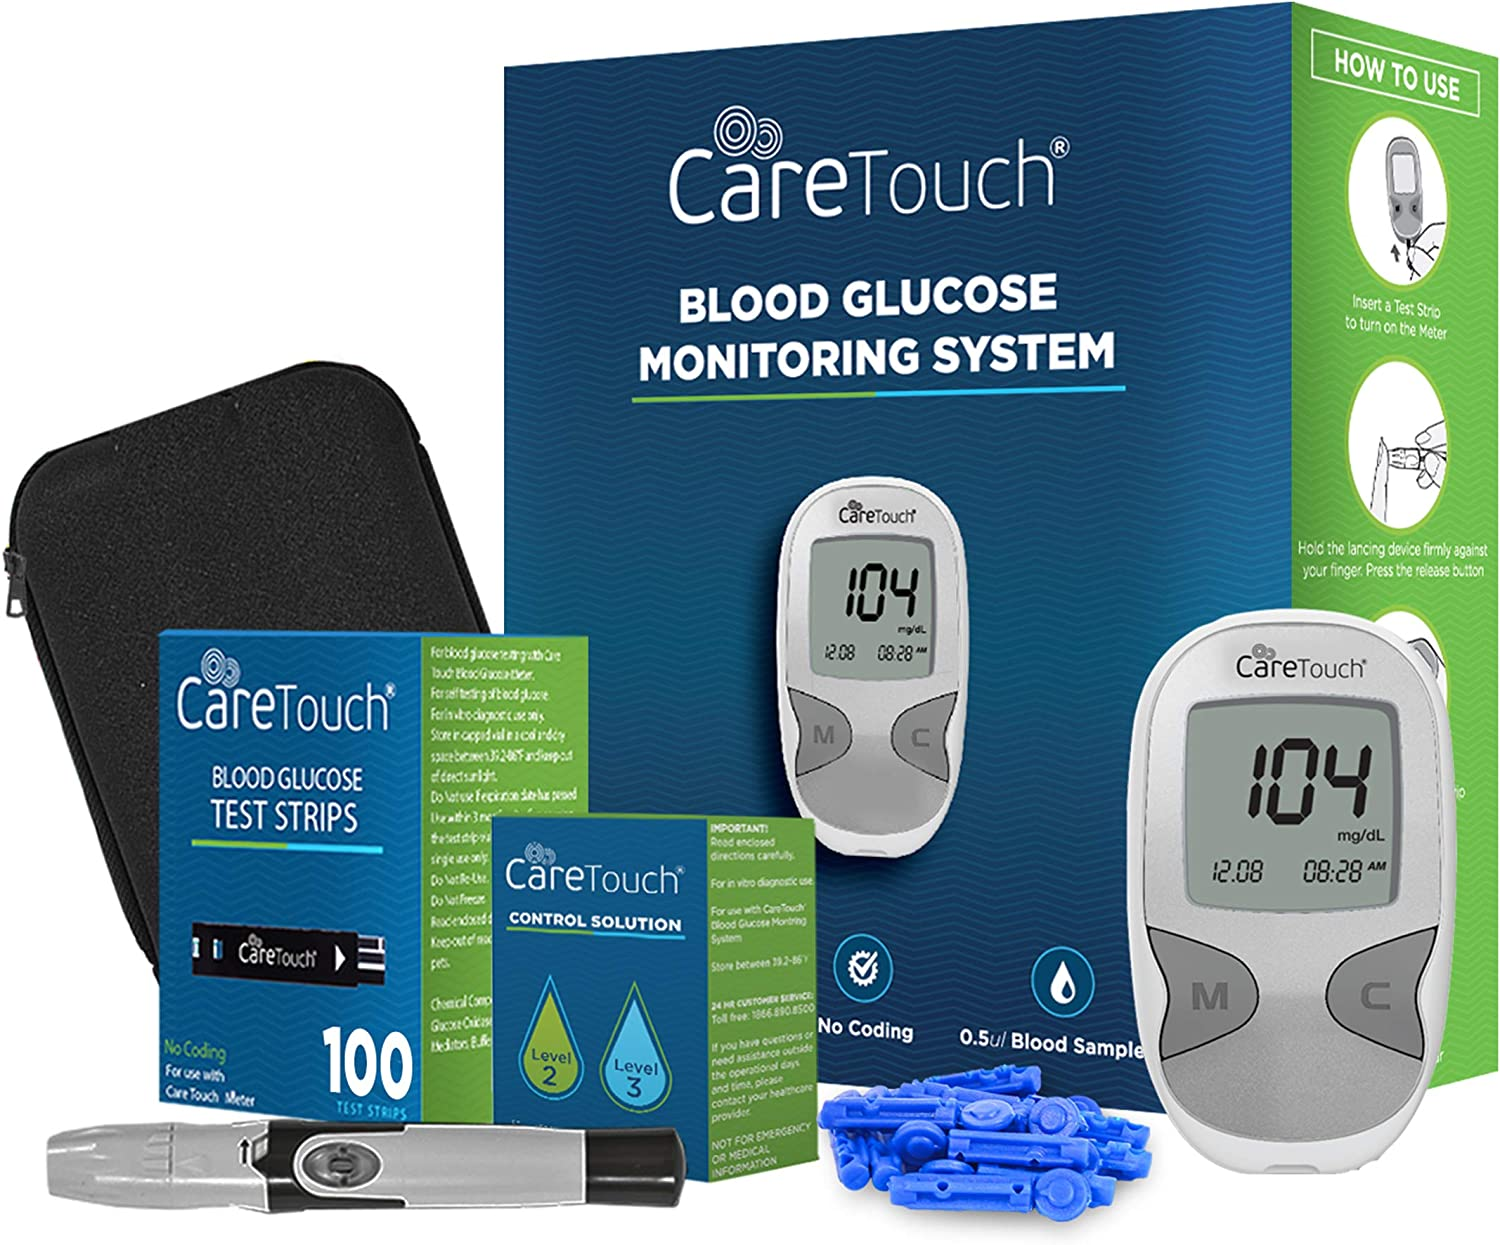 Care Touch Diabetes Blood Sugar Kit – Care Touch Blood Glucose Meter, 100 Blood Test Strips, 1 Lancing Device, 30 Gauge Lancets-100 Count, Control Solution and Carrying Case